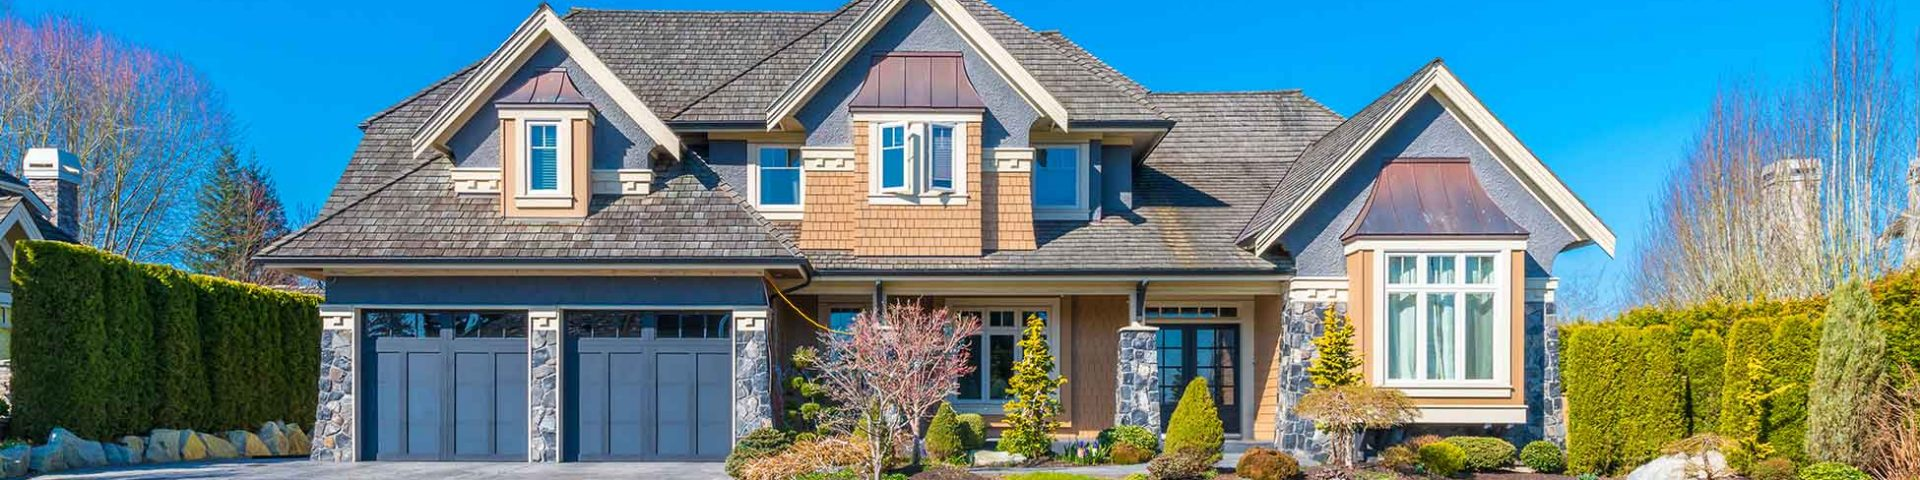 Required Income To Own Home Metro Vancouver